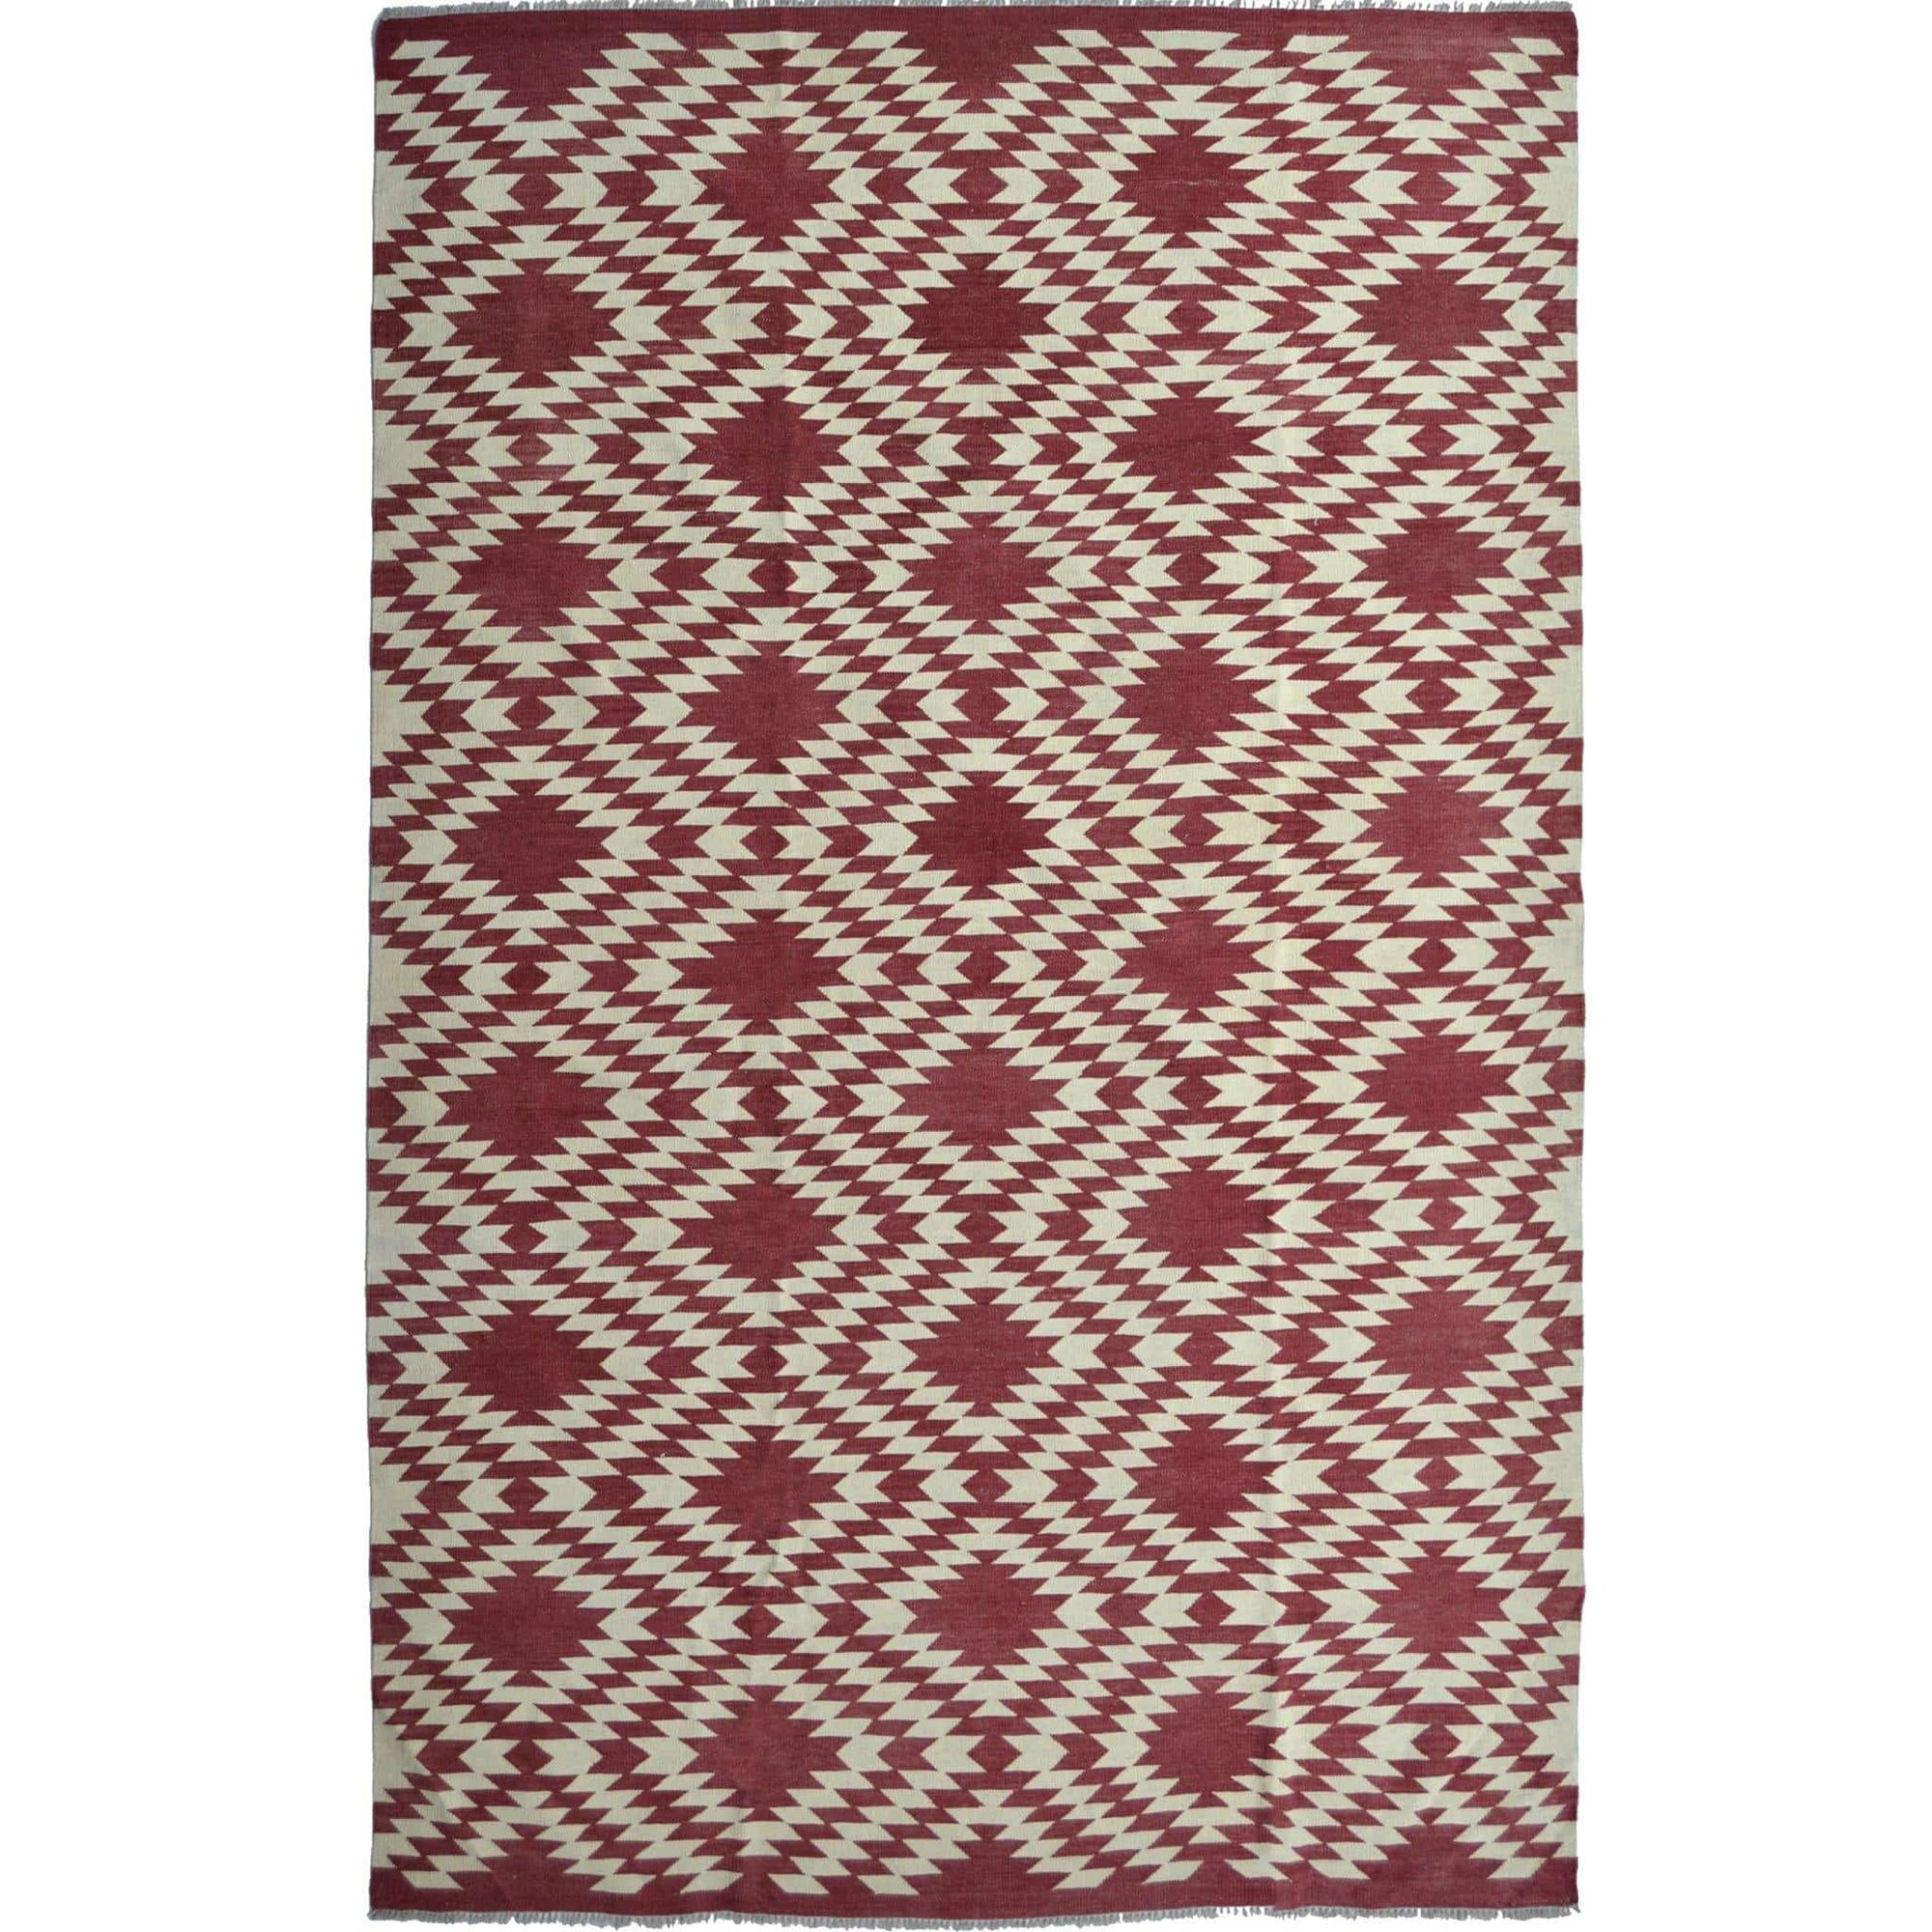 Modern Hand-woven 100% Wool Afghan Chobi Kilim Rug 210cm x 302cm Persian-Rug | House-of-Haghi | NewMarket | Auckland | NZ | Handmade Persian Rugs | Hand Knotted Persian Rugs